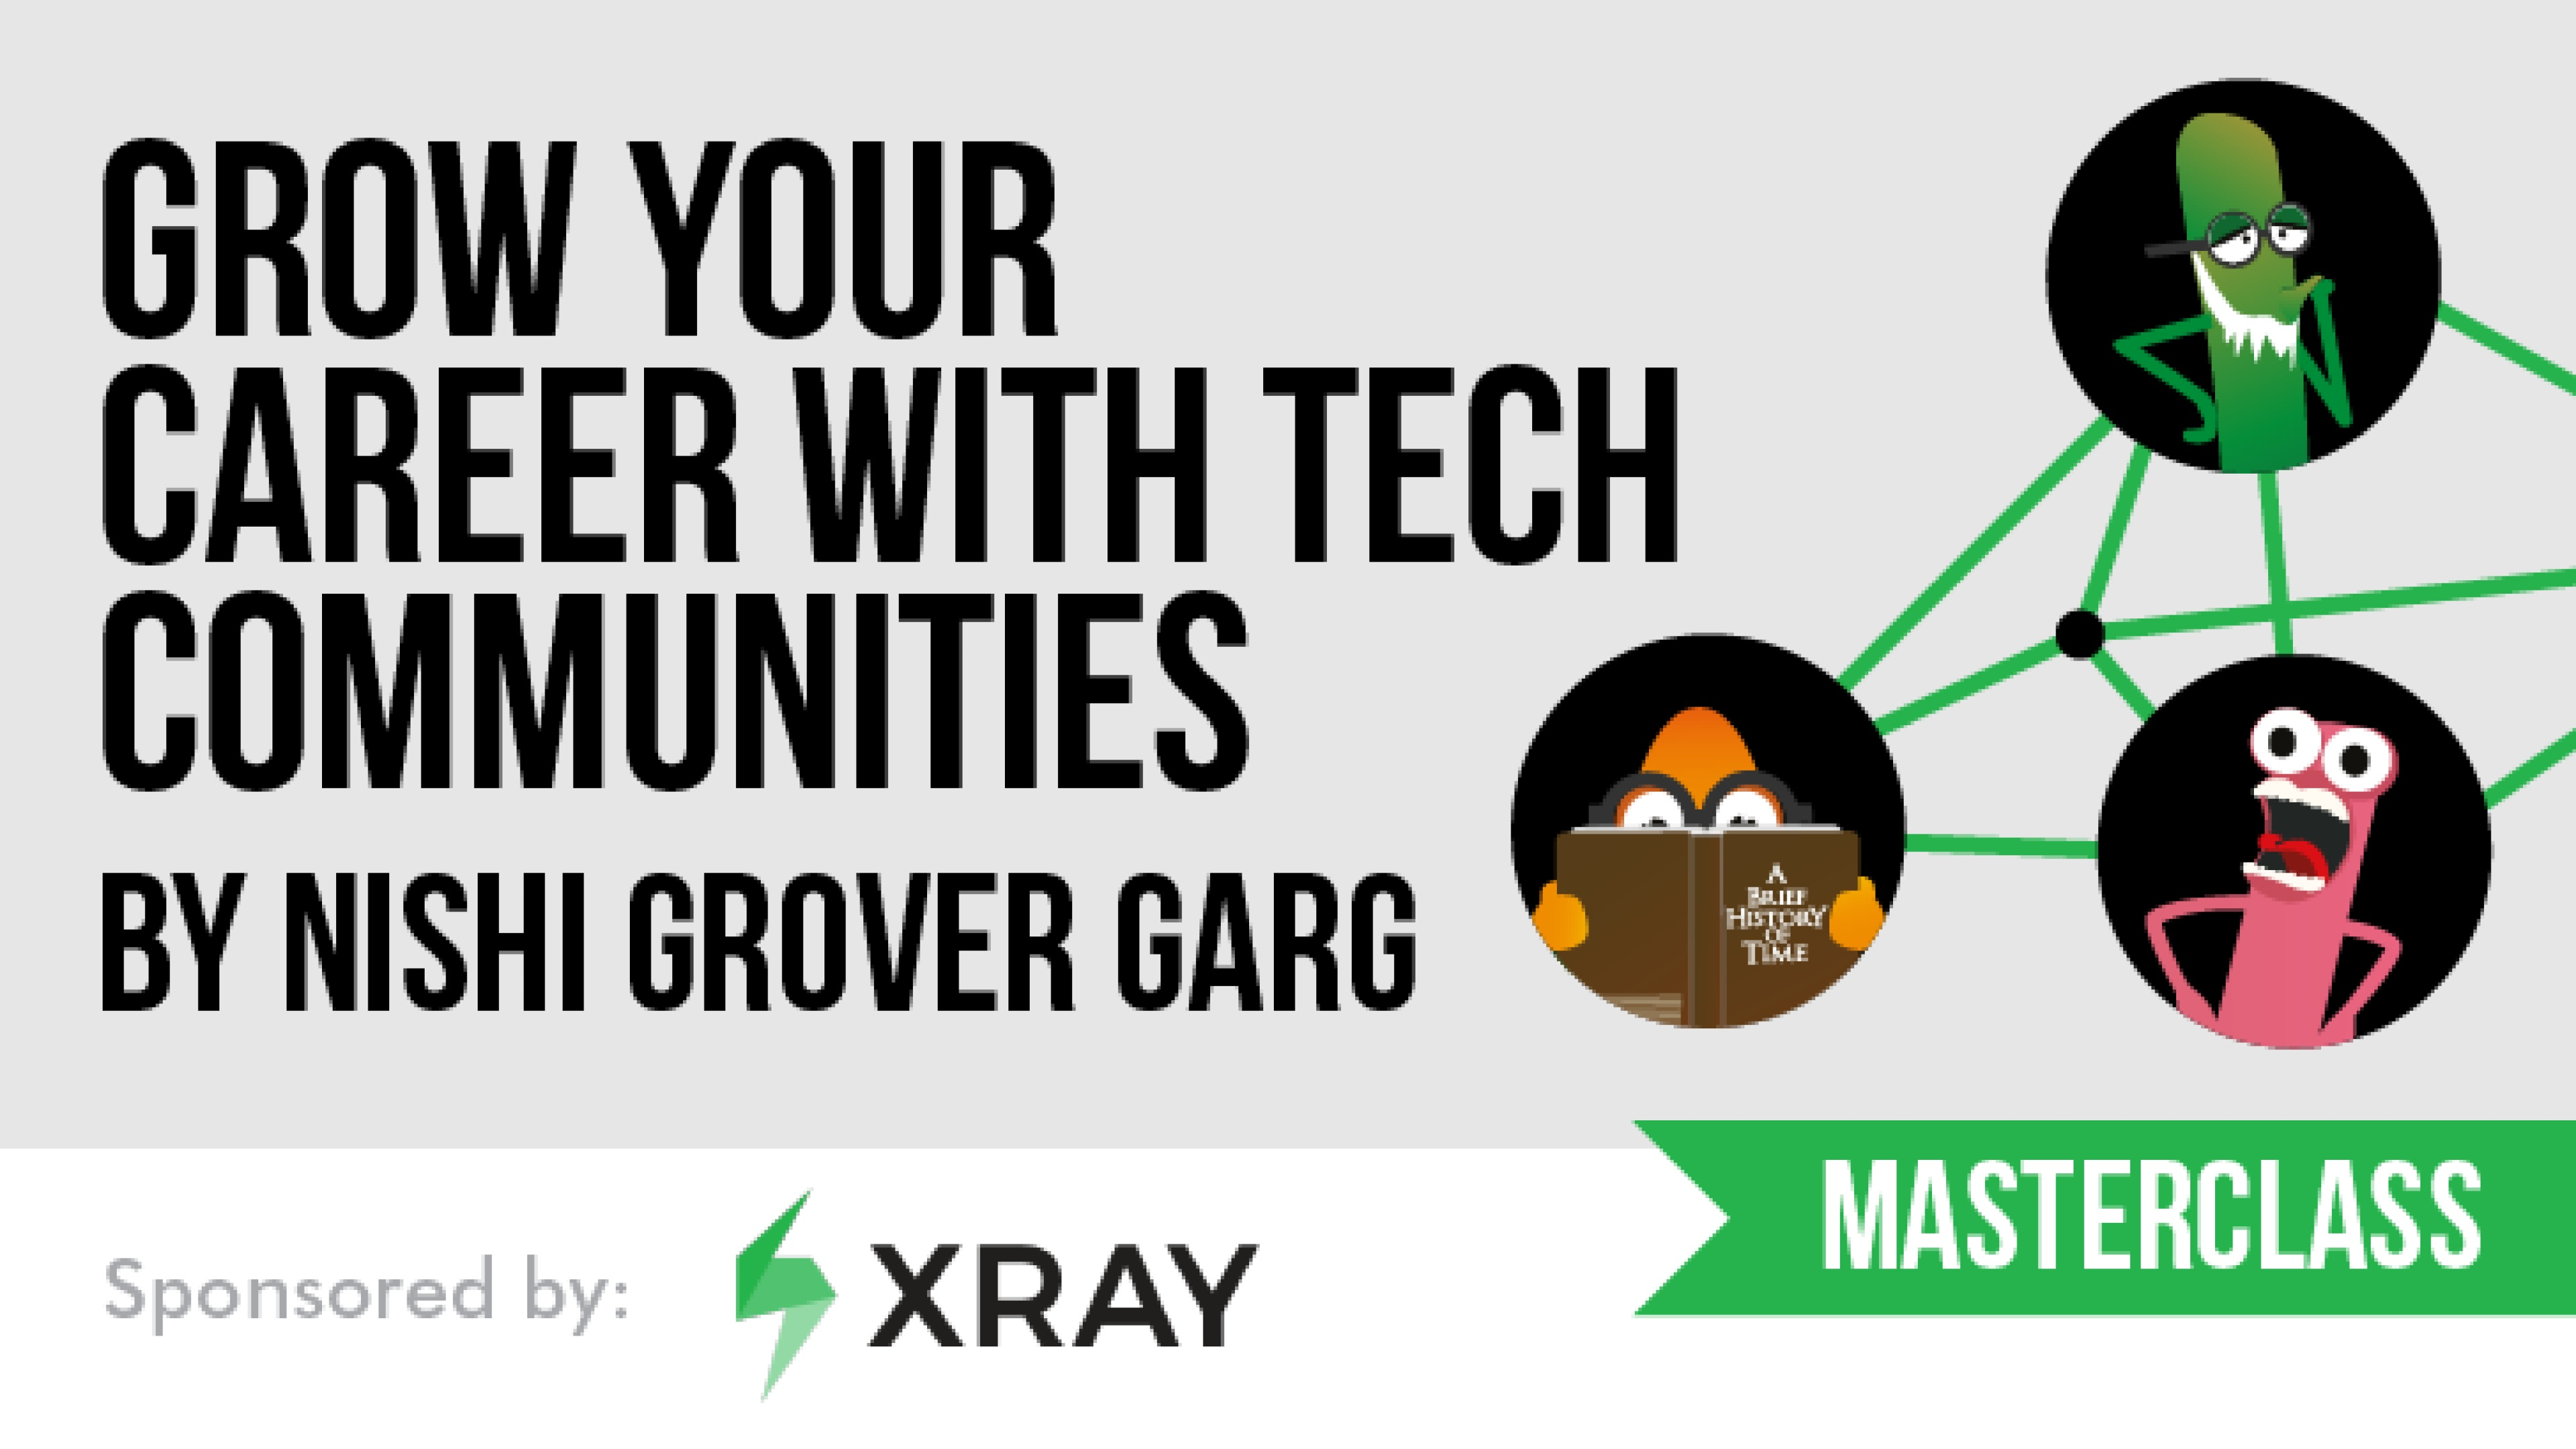 Grow your Career with Tech Communities with Nishi Grover Garg